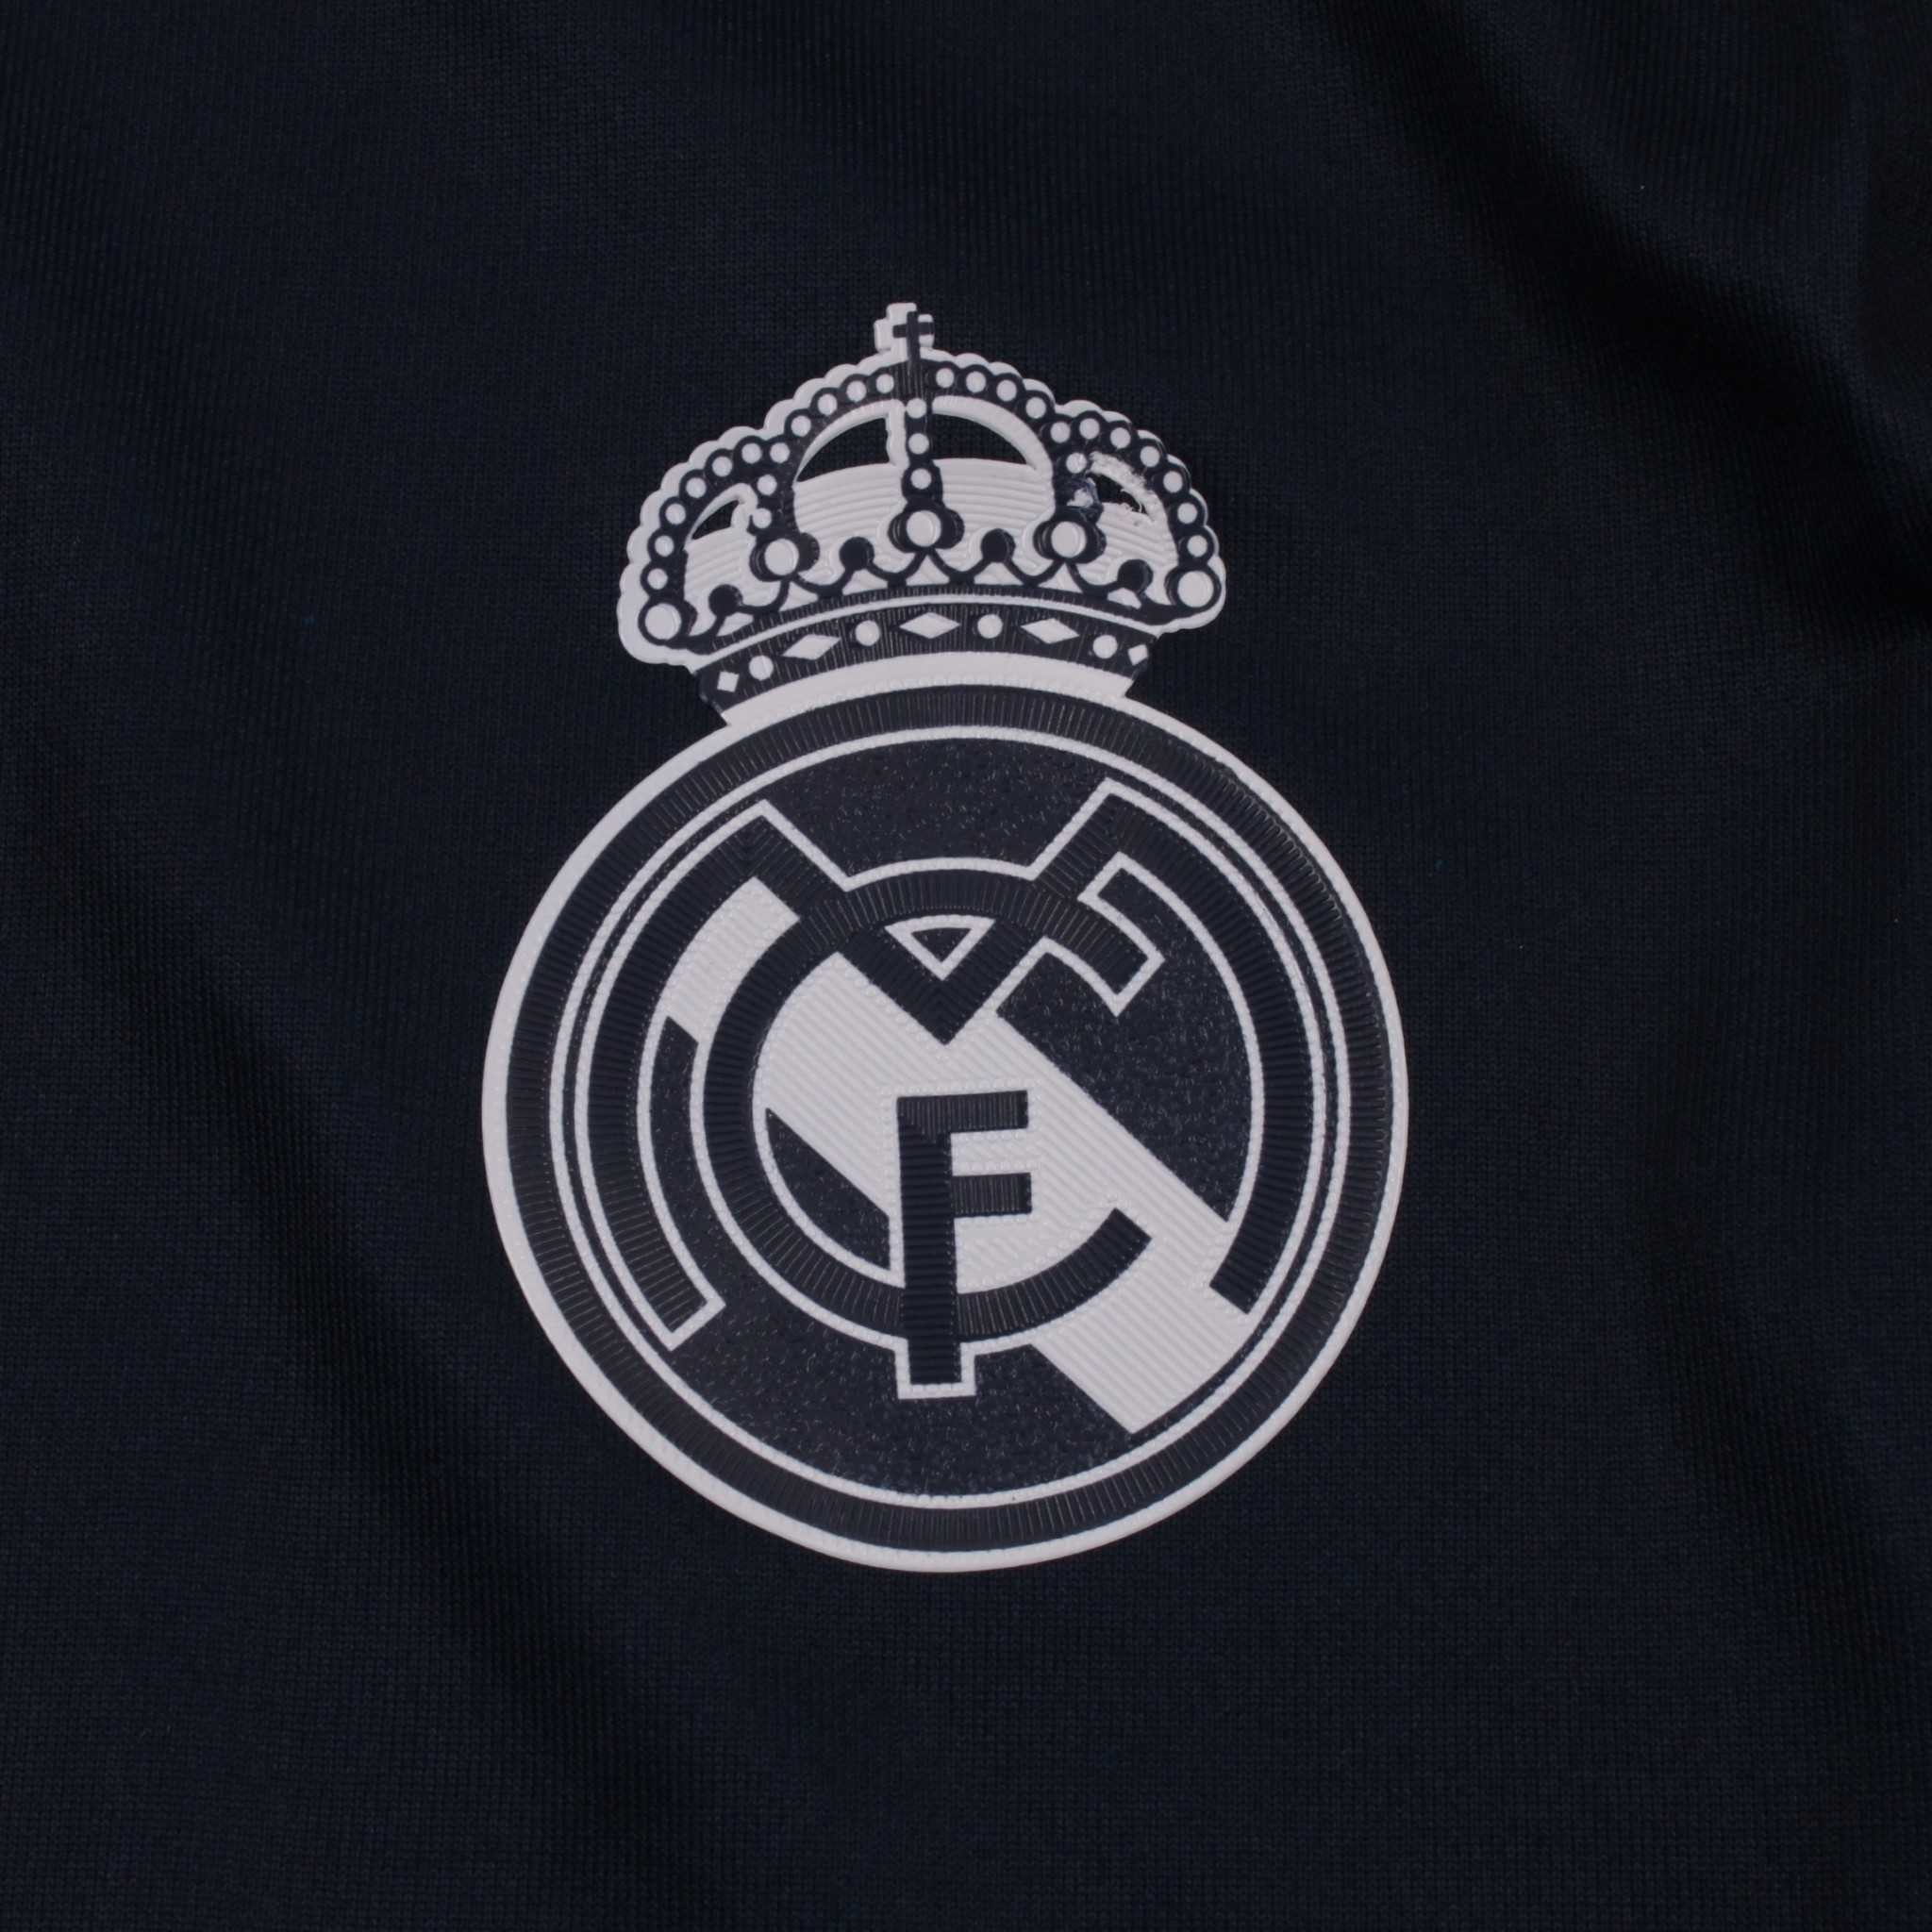 Res: 2048x2048, Widescreen For Real Madrid Wallpaper 2018 Team High Quality Laptop